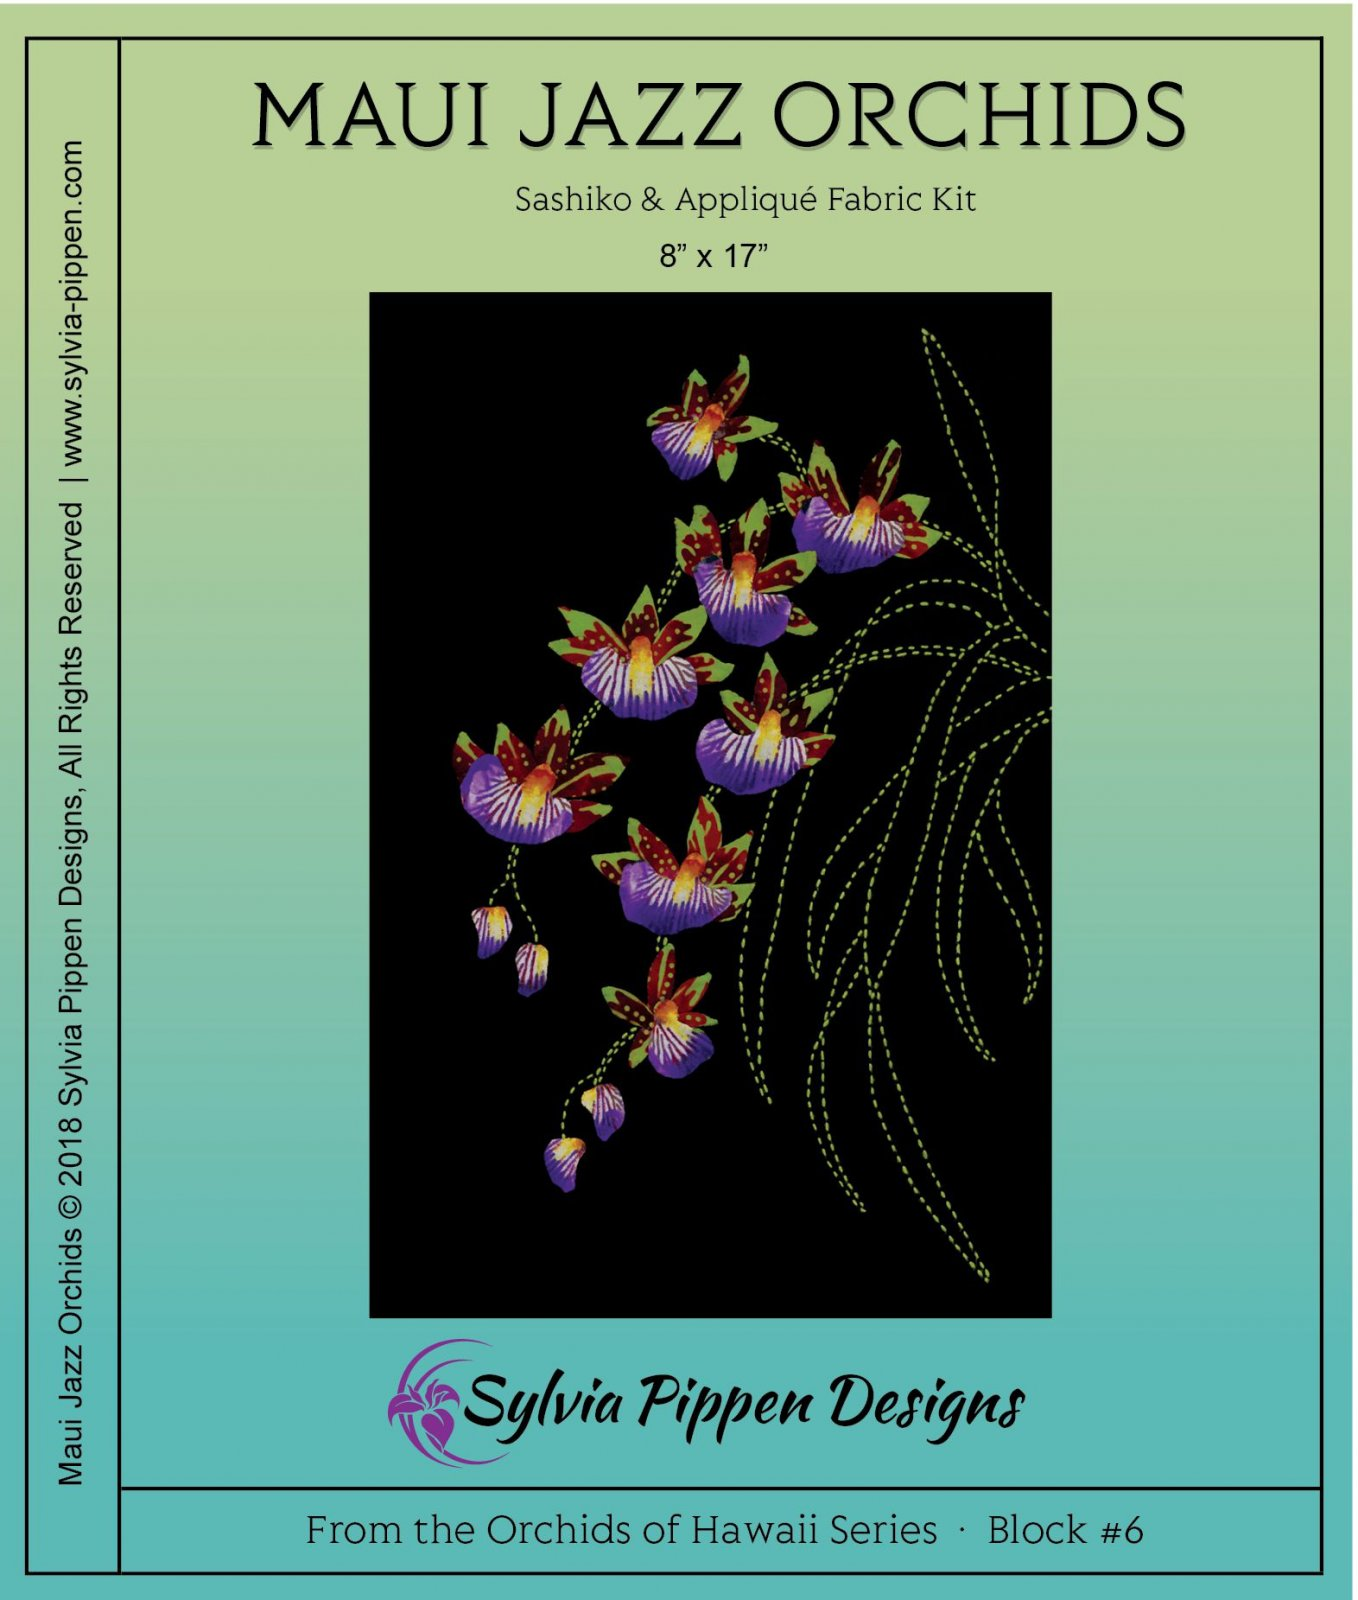 Maui Jazz Orchids  Fabric Kit from the Orchids of Hawaii Series